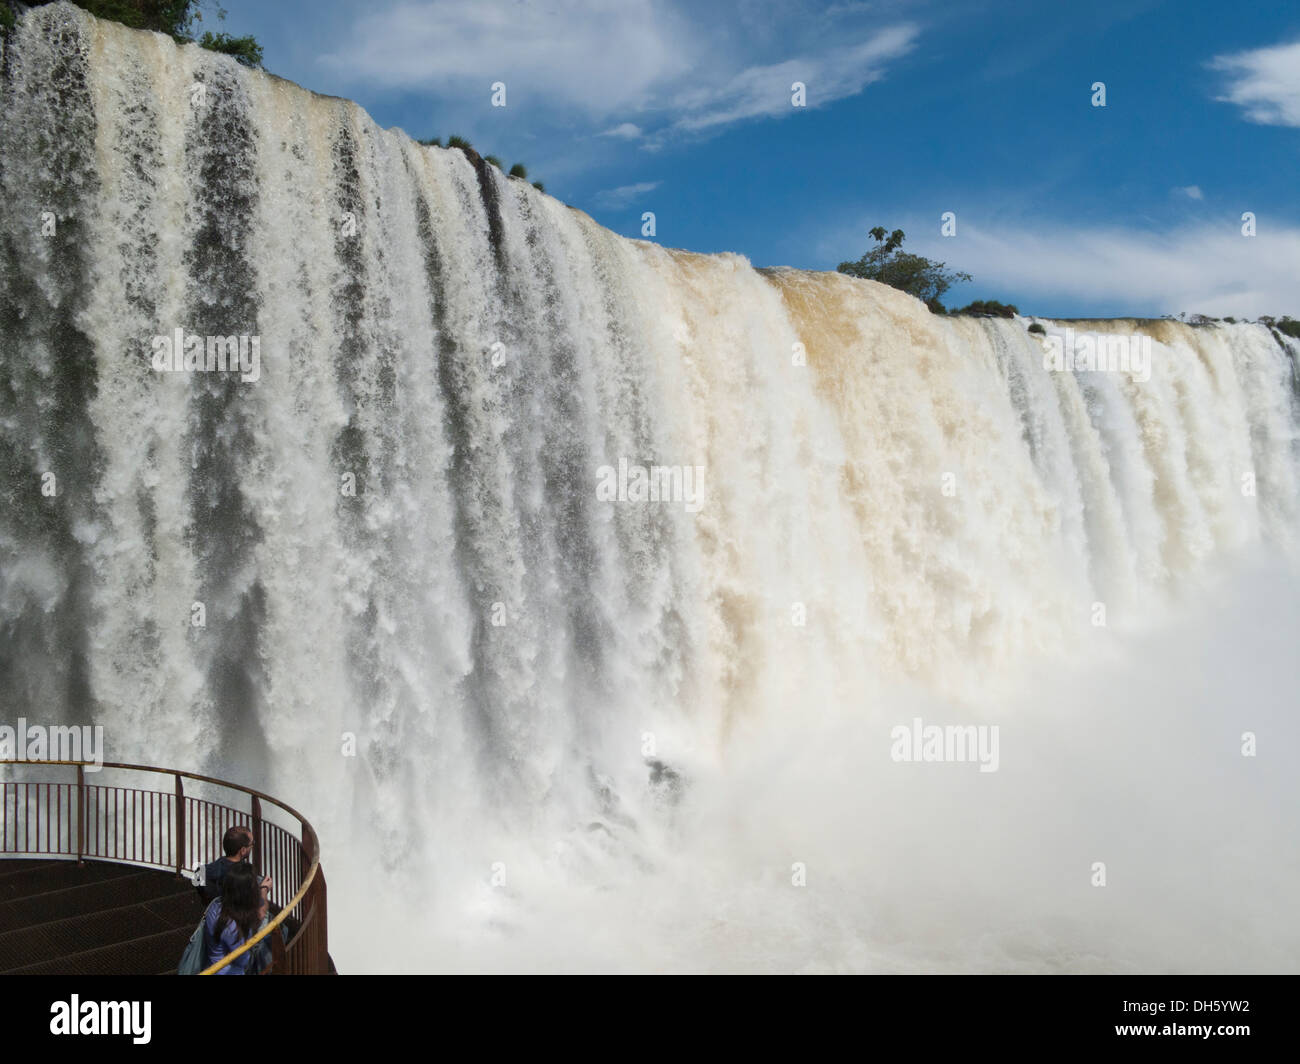 Falls Cascading by the Viewing Platform at Iguacu National Park Brazil - Stock Image